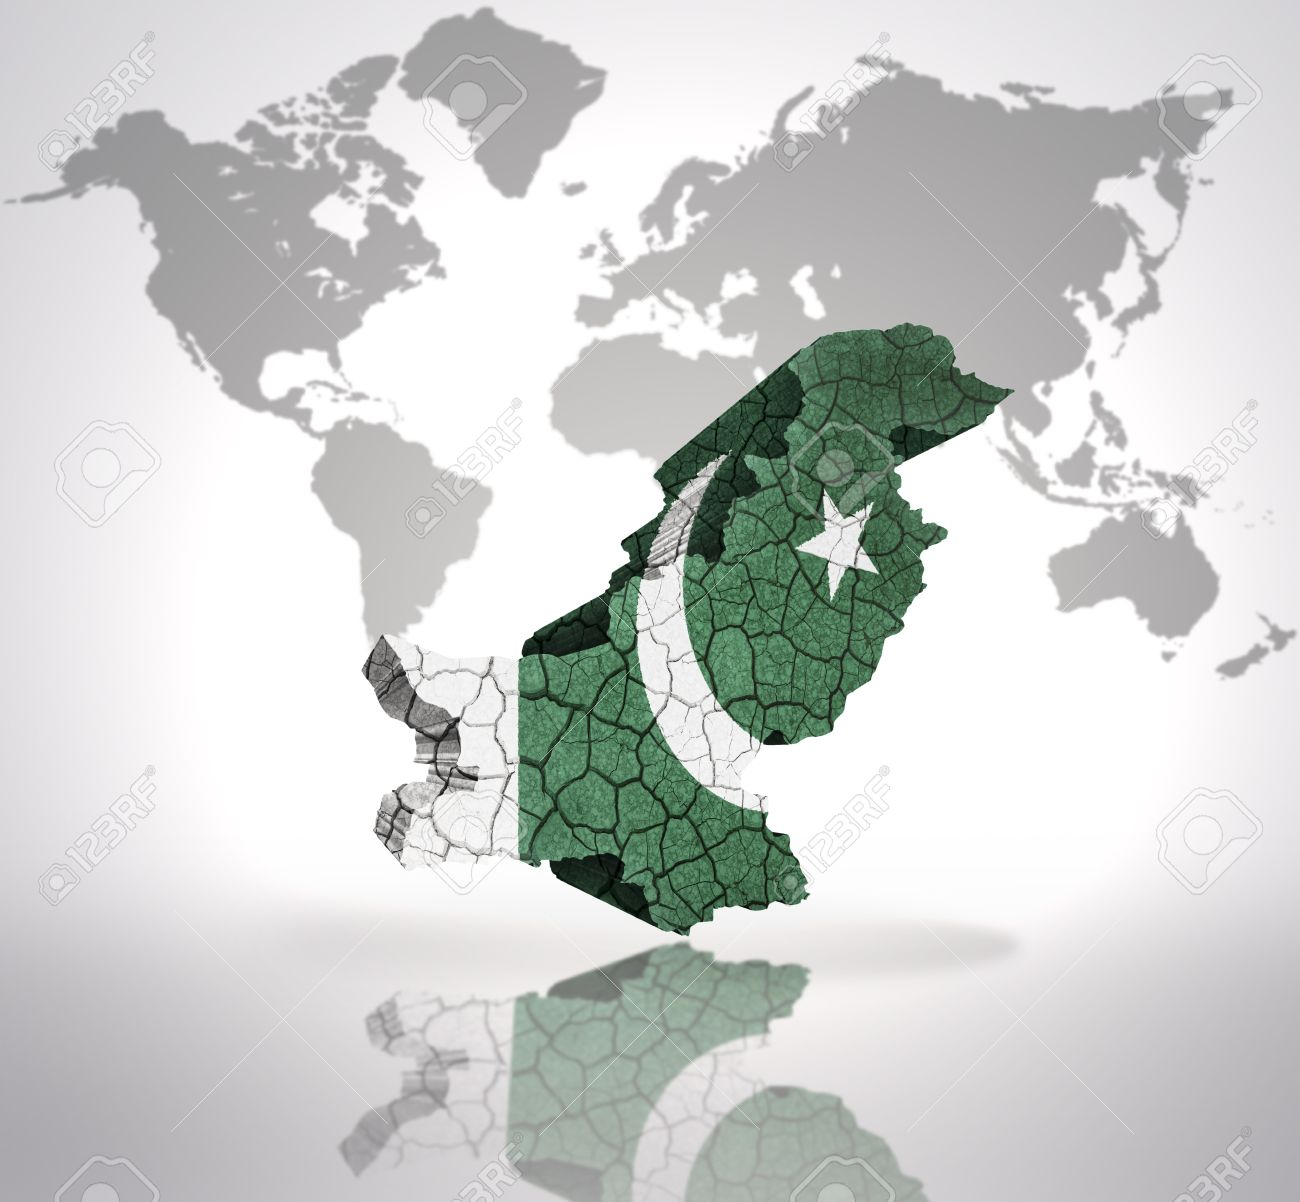 Map of pakistan with pakistani flag on a world map background stock map of pakistan with pakistani flag on a world map background stock photo 32849782 gumiabroncs Image collections